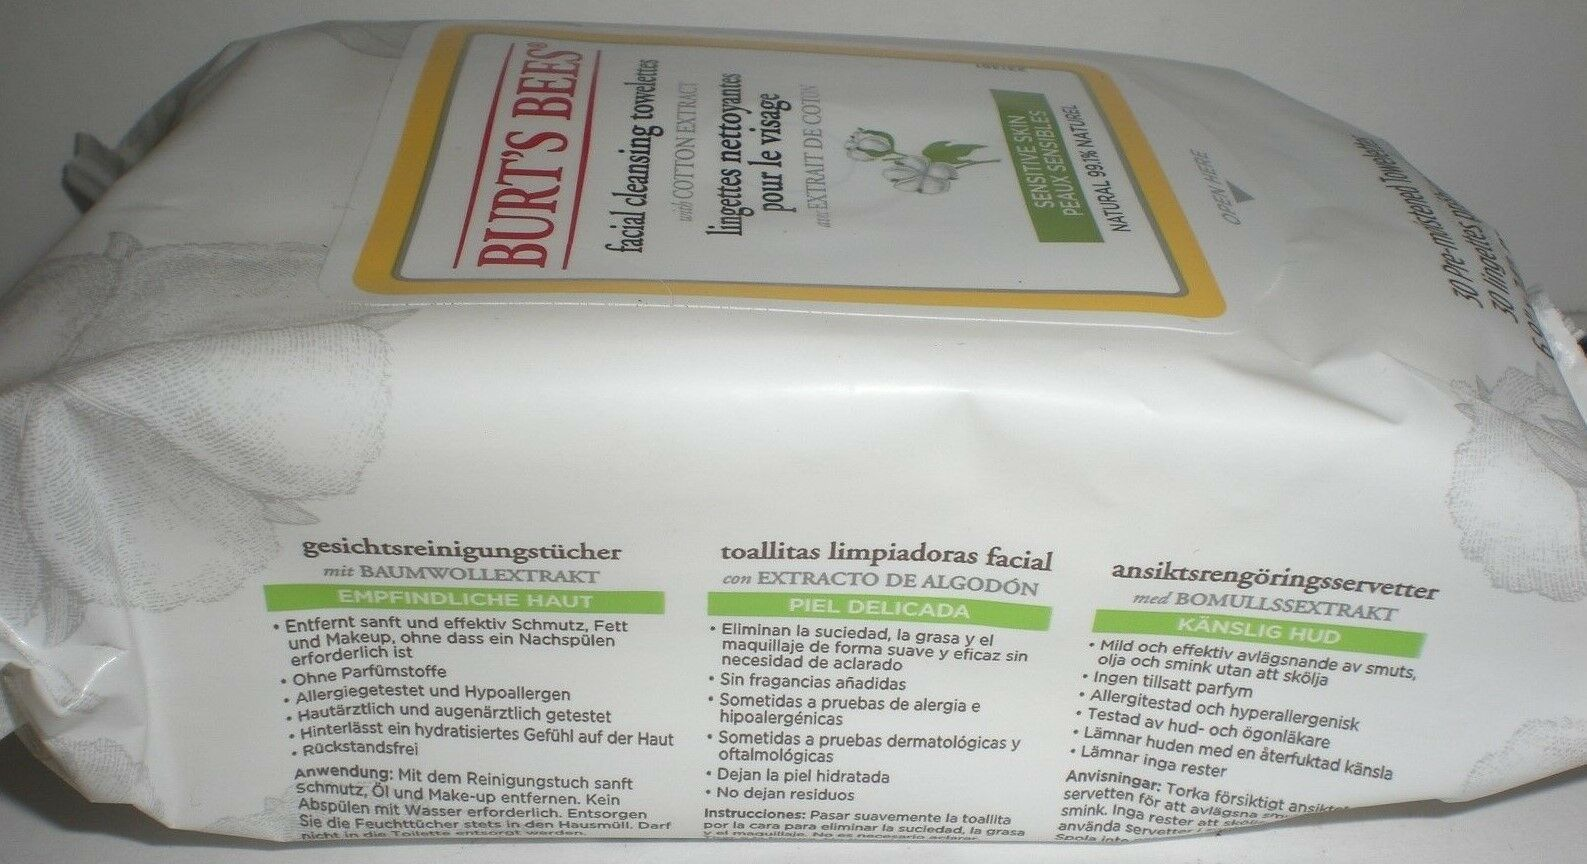 Burt's Bees Face Cleansing Towelettes Wipe Cotton Extract Sensitive Skin 30 x6 image 3